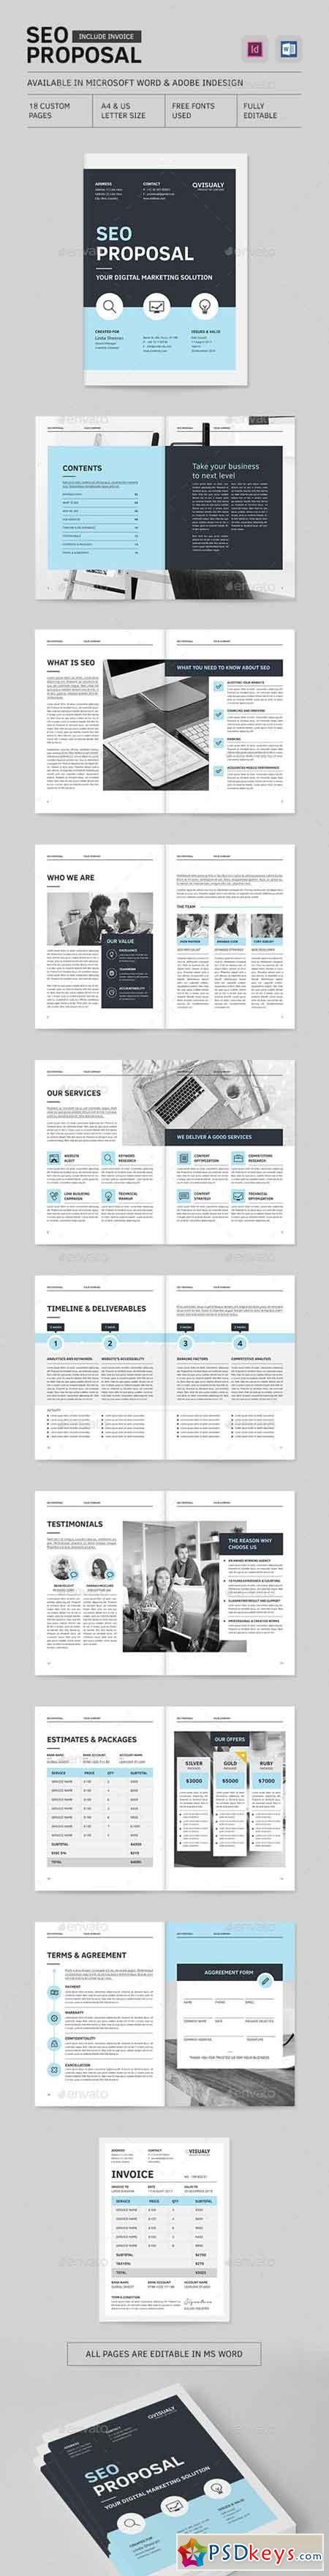 seo proposal 20460629 free download photoshop vector stock image via torrent zippyshare from